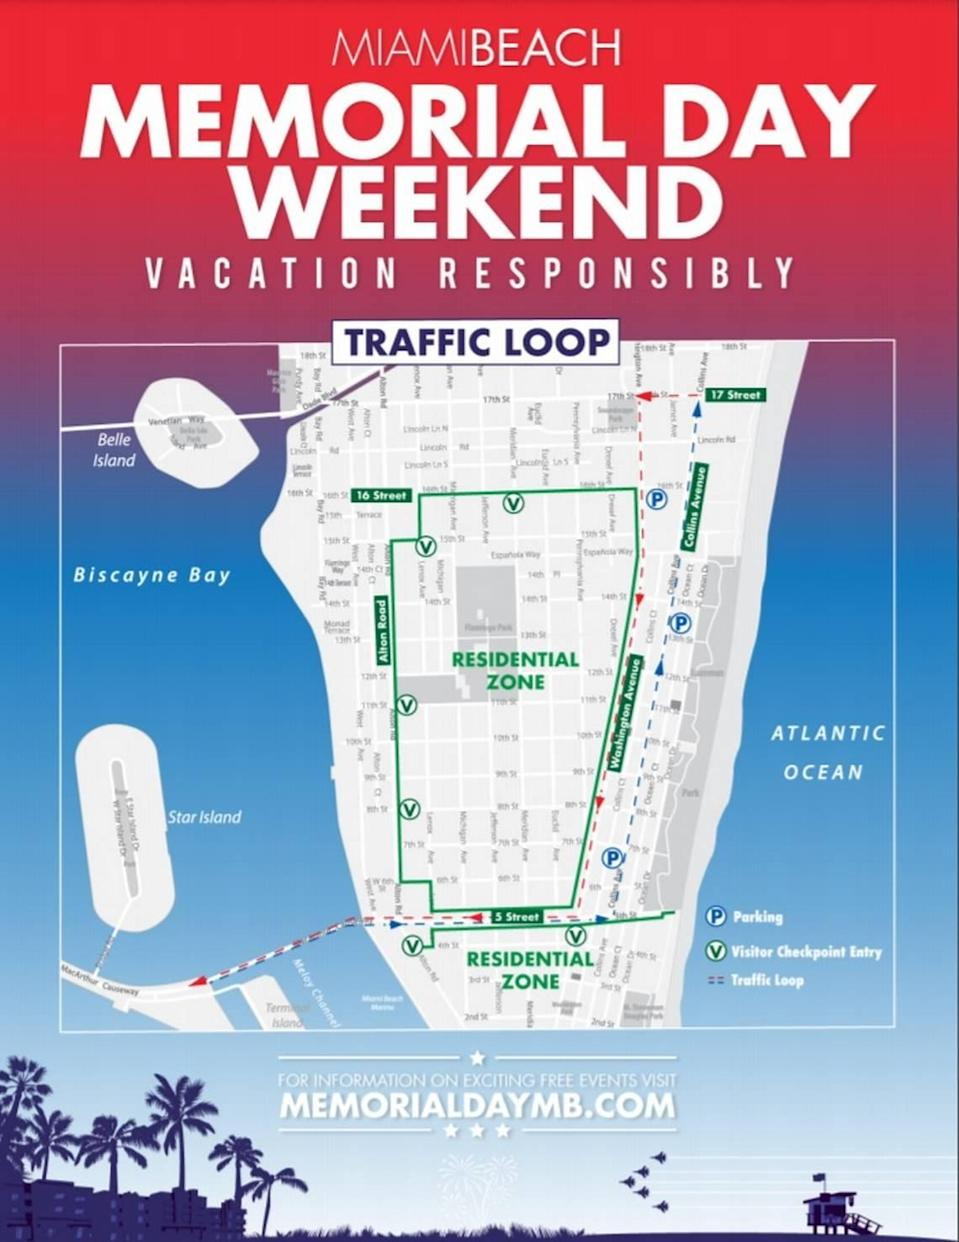 A diagram of the evening traffic loop that will be in place during Memorial Day Weekend in South Beach.